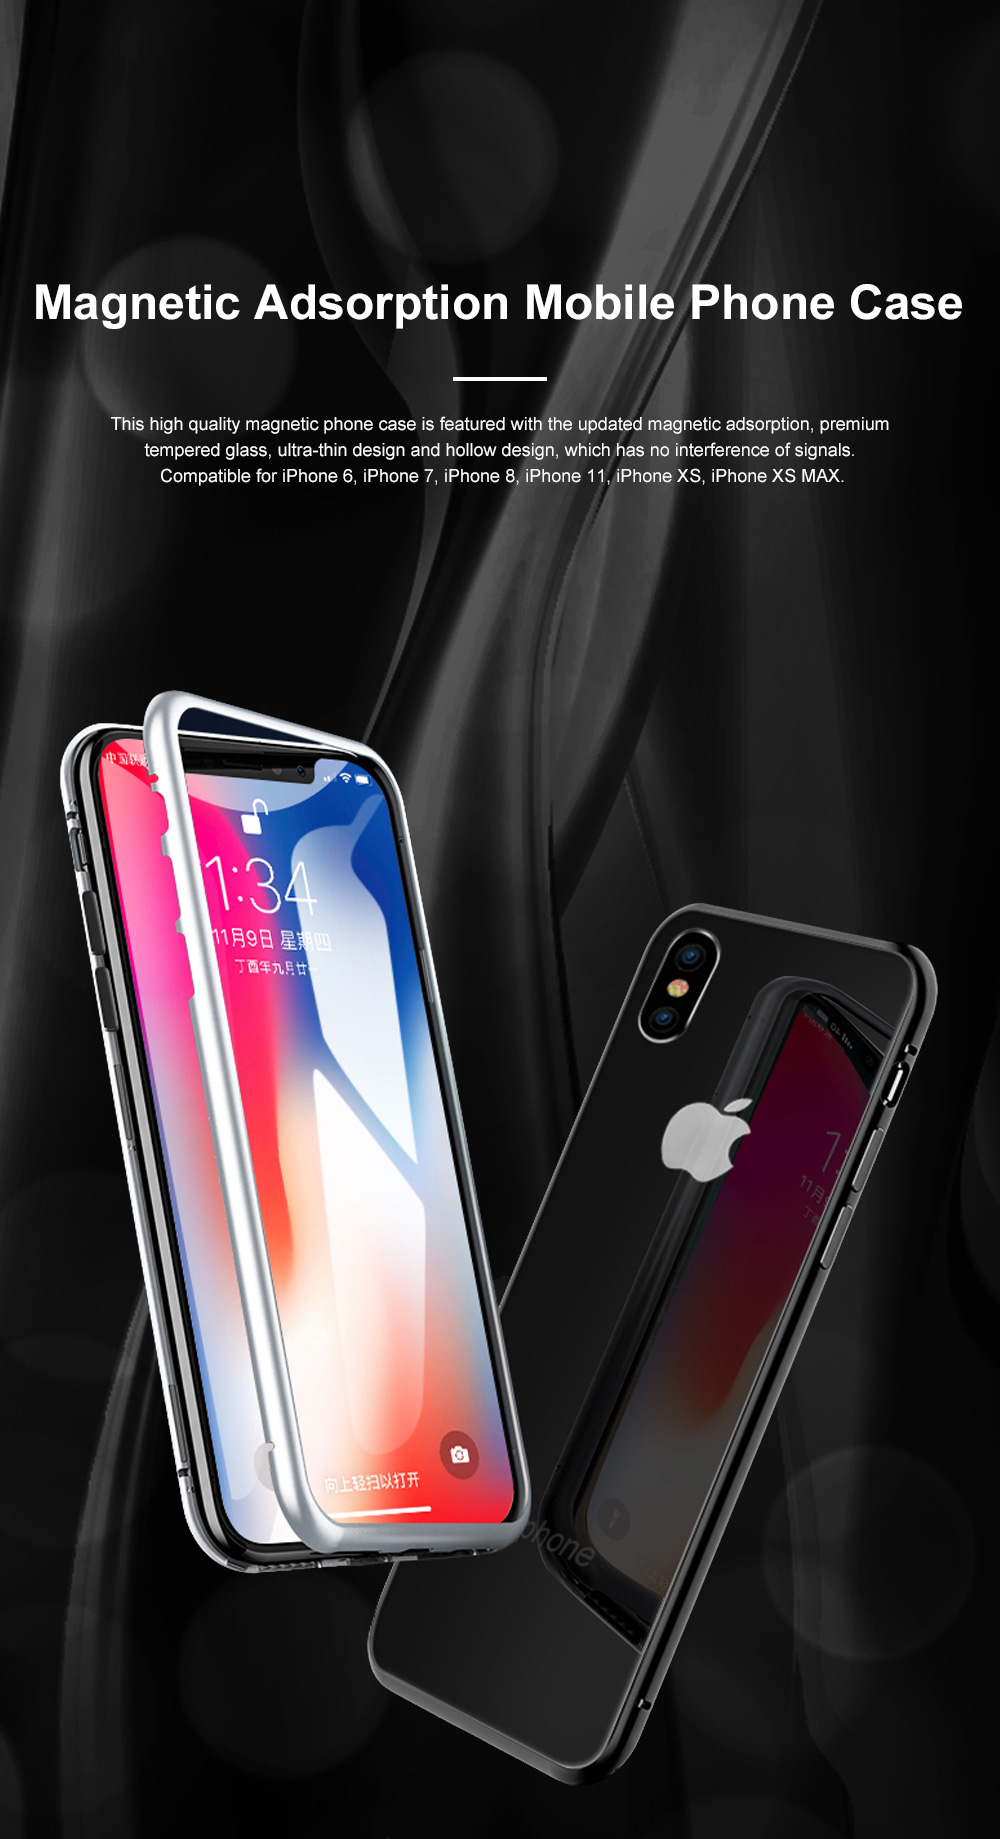 Magnetic Adsorption Phone Case Double-Sided Tempered Glass Protection Shell Compatible for iPhone 6 7 8 11 XS Max & XS 0